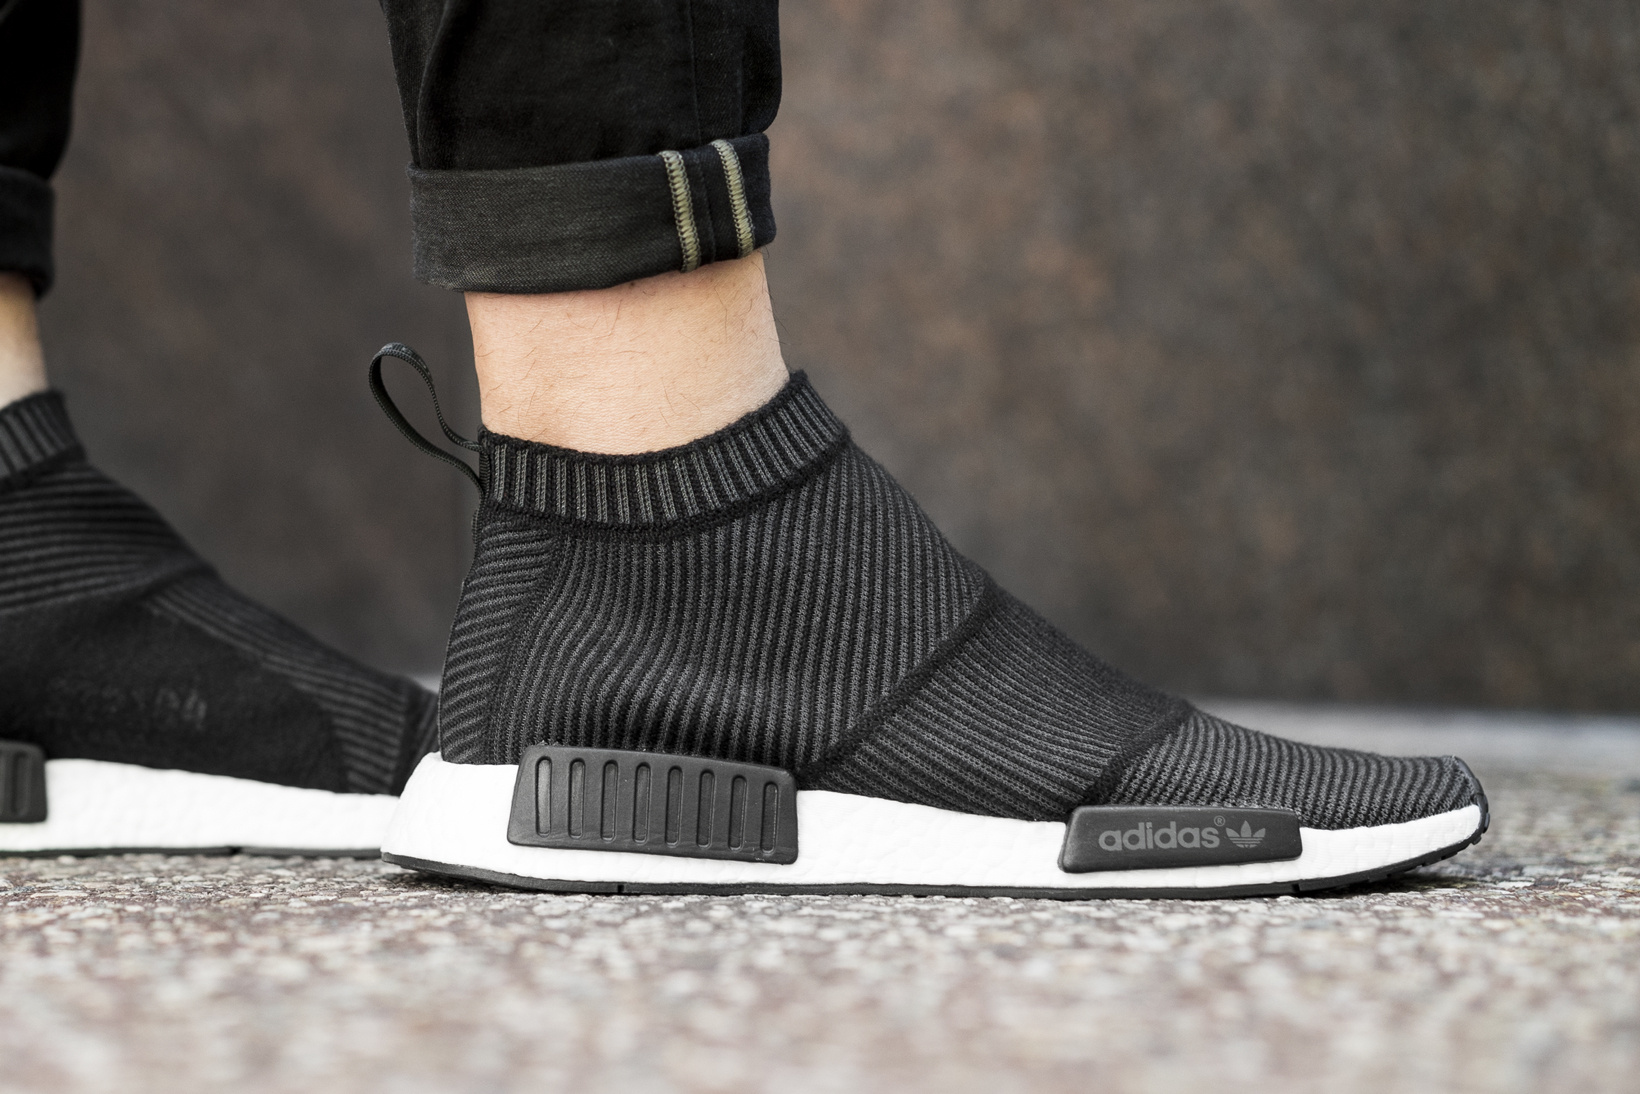 afc8d45e1 Adidas Originals NMD City Sock